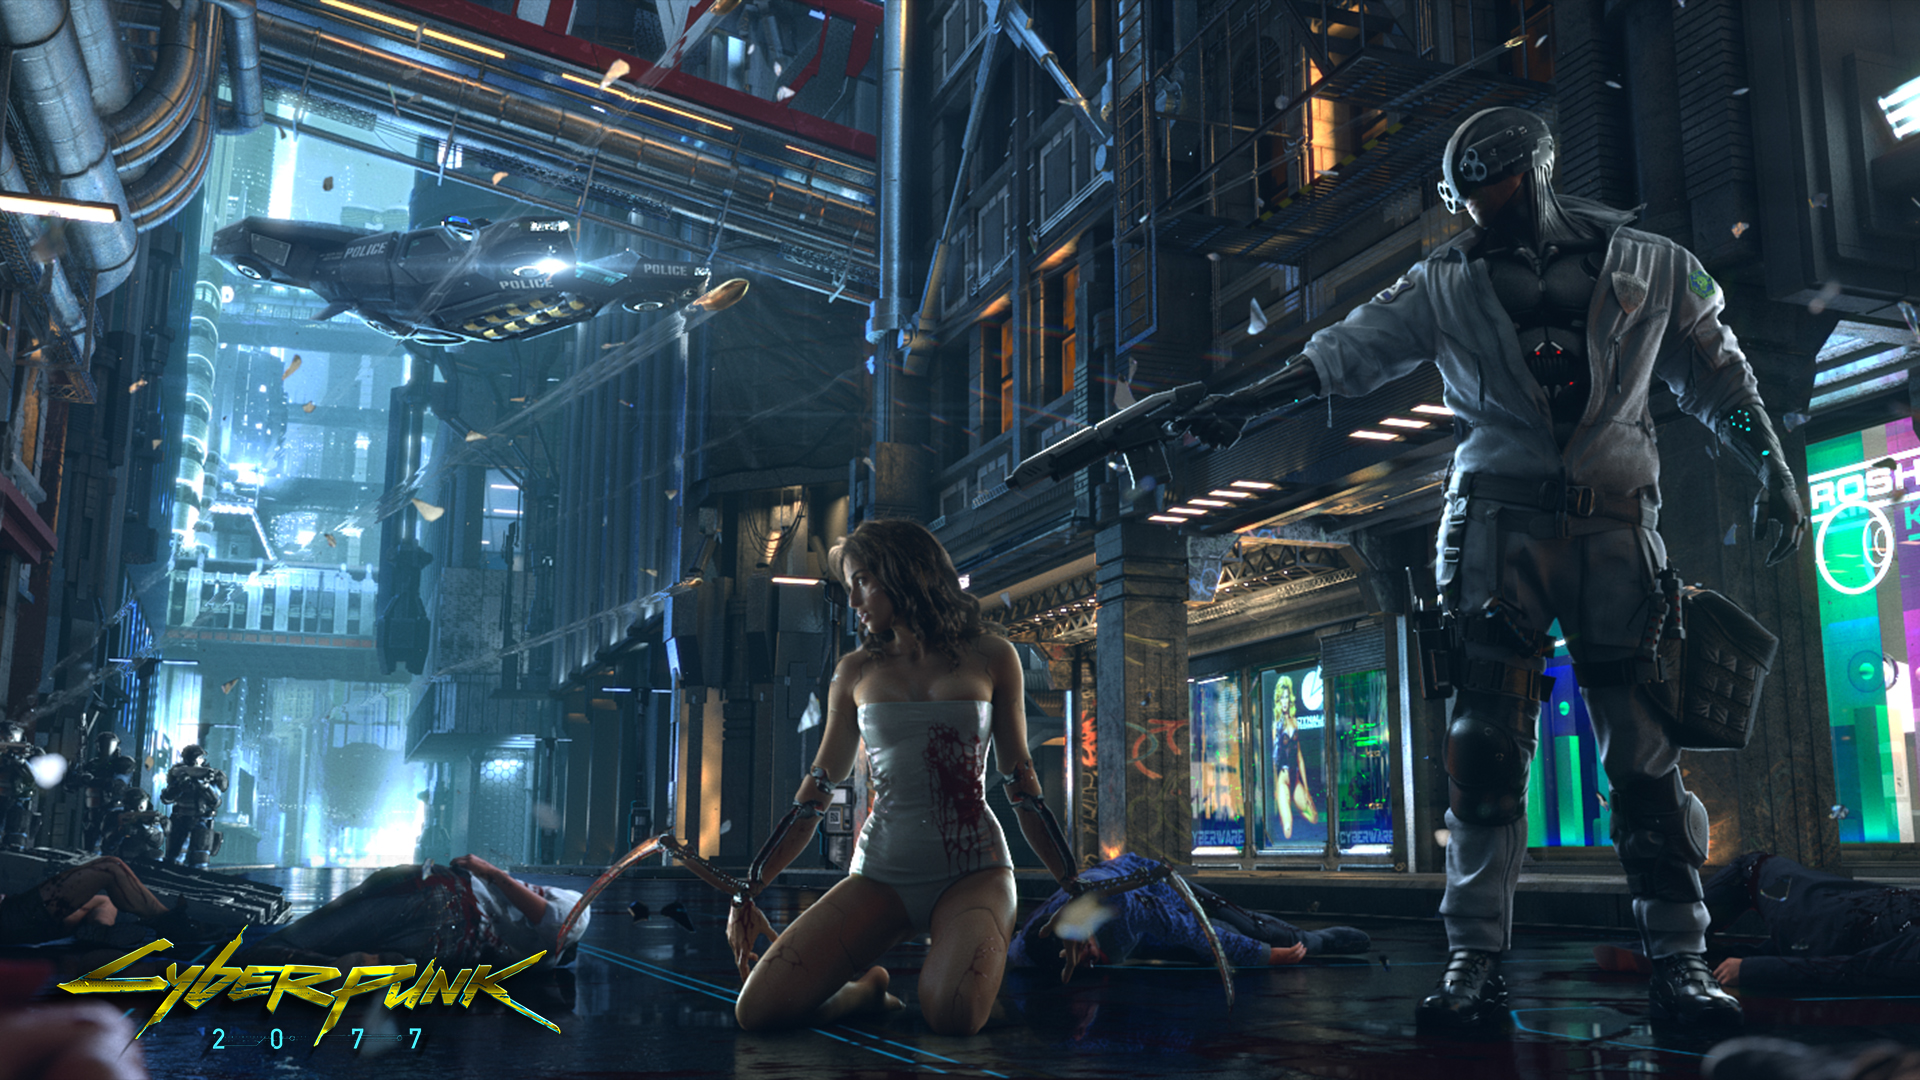 Photo of CD Projekt RED va prezenta un RPG la E3, probabil Cyberpunk 2077